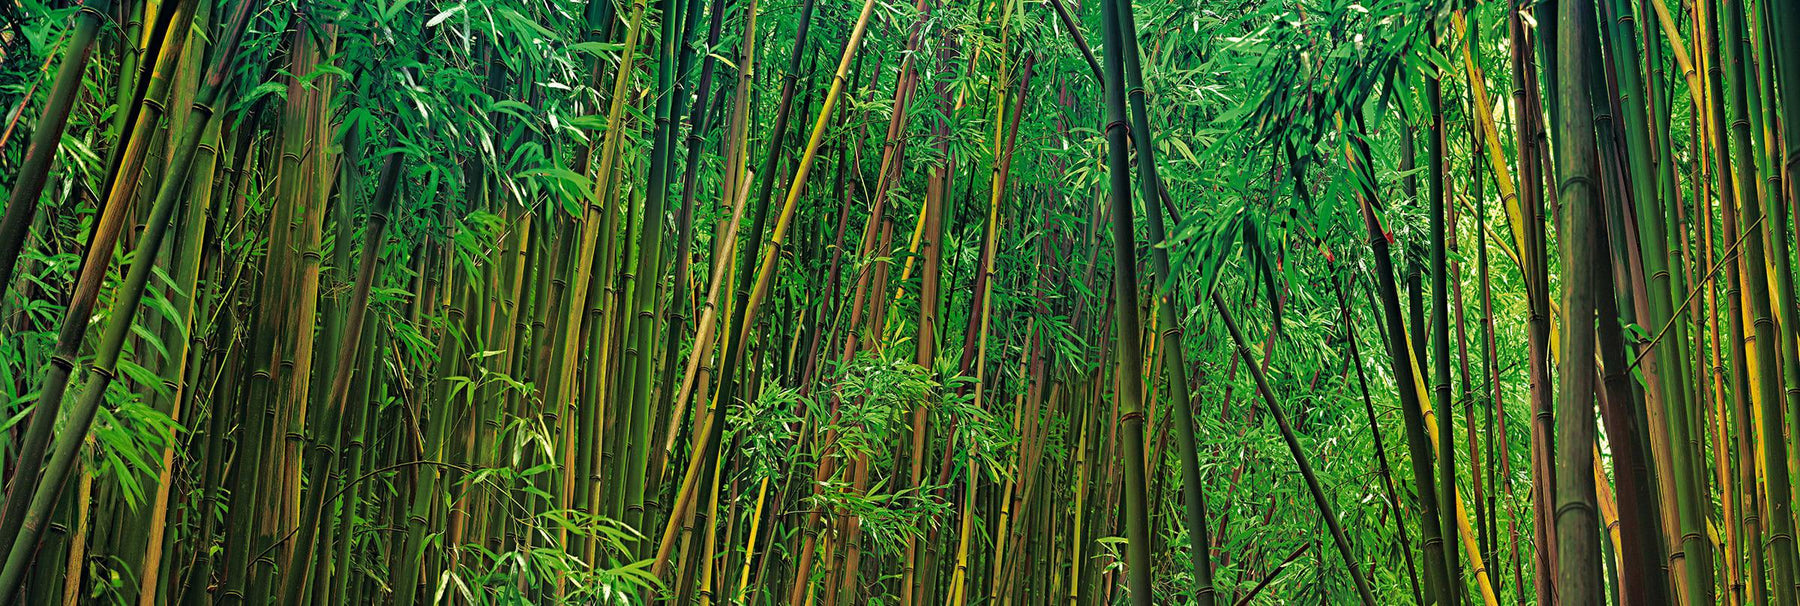 Walls of green and yellow bamboo in the rainforest of Hana Hawaii